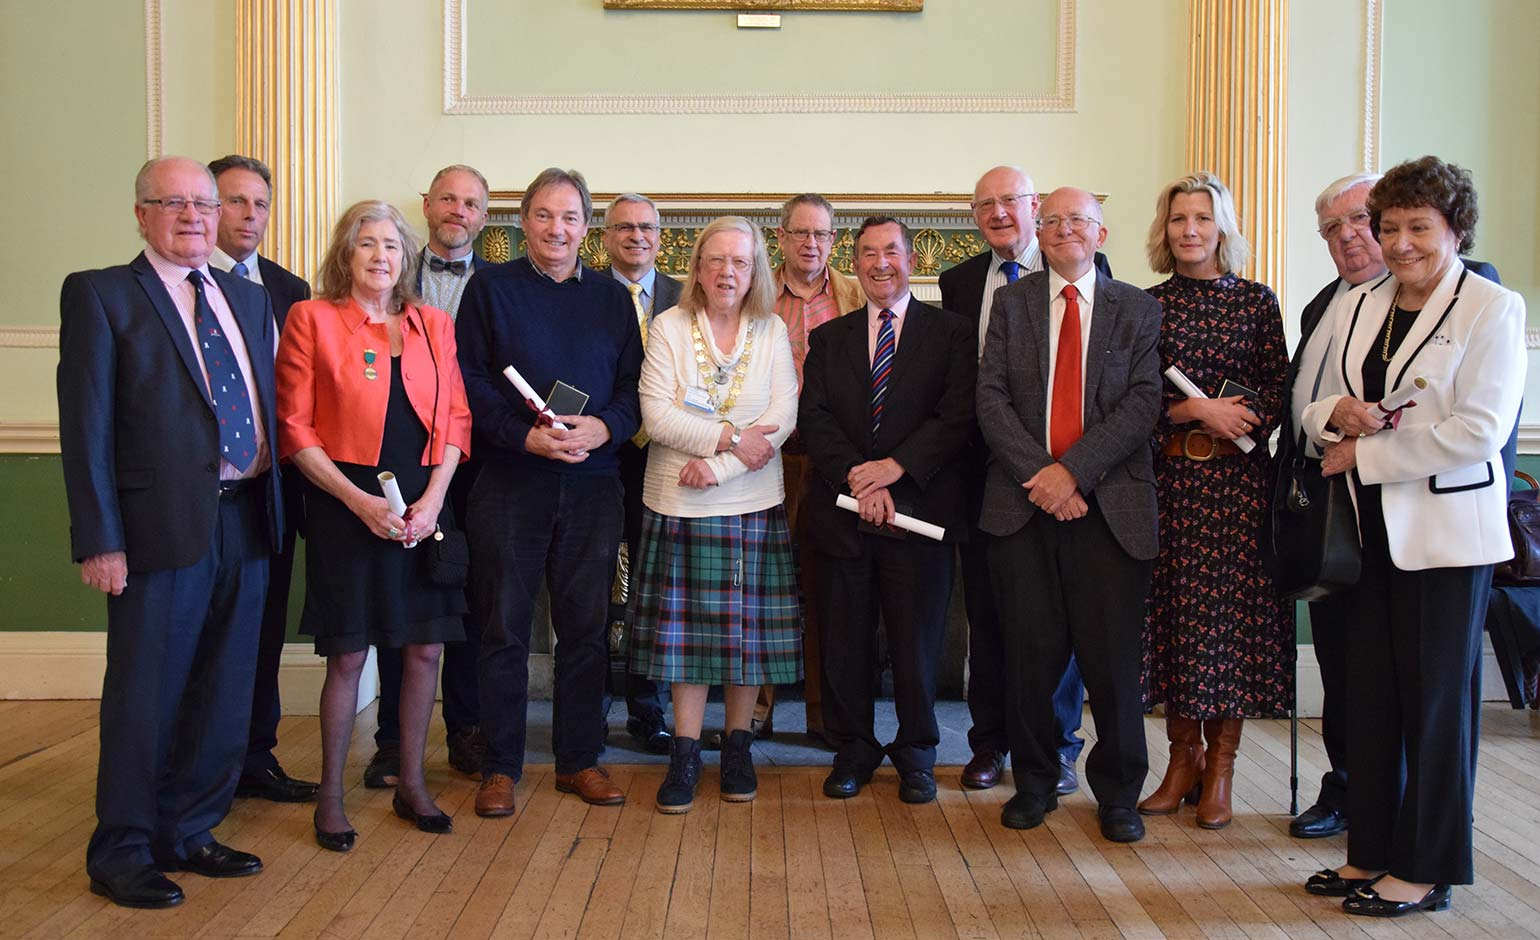 Bath & North East Somerset Council honours long-serving former members | Bath Echo